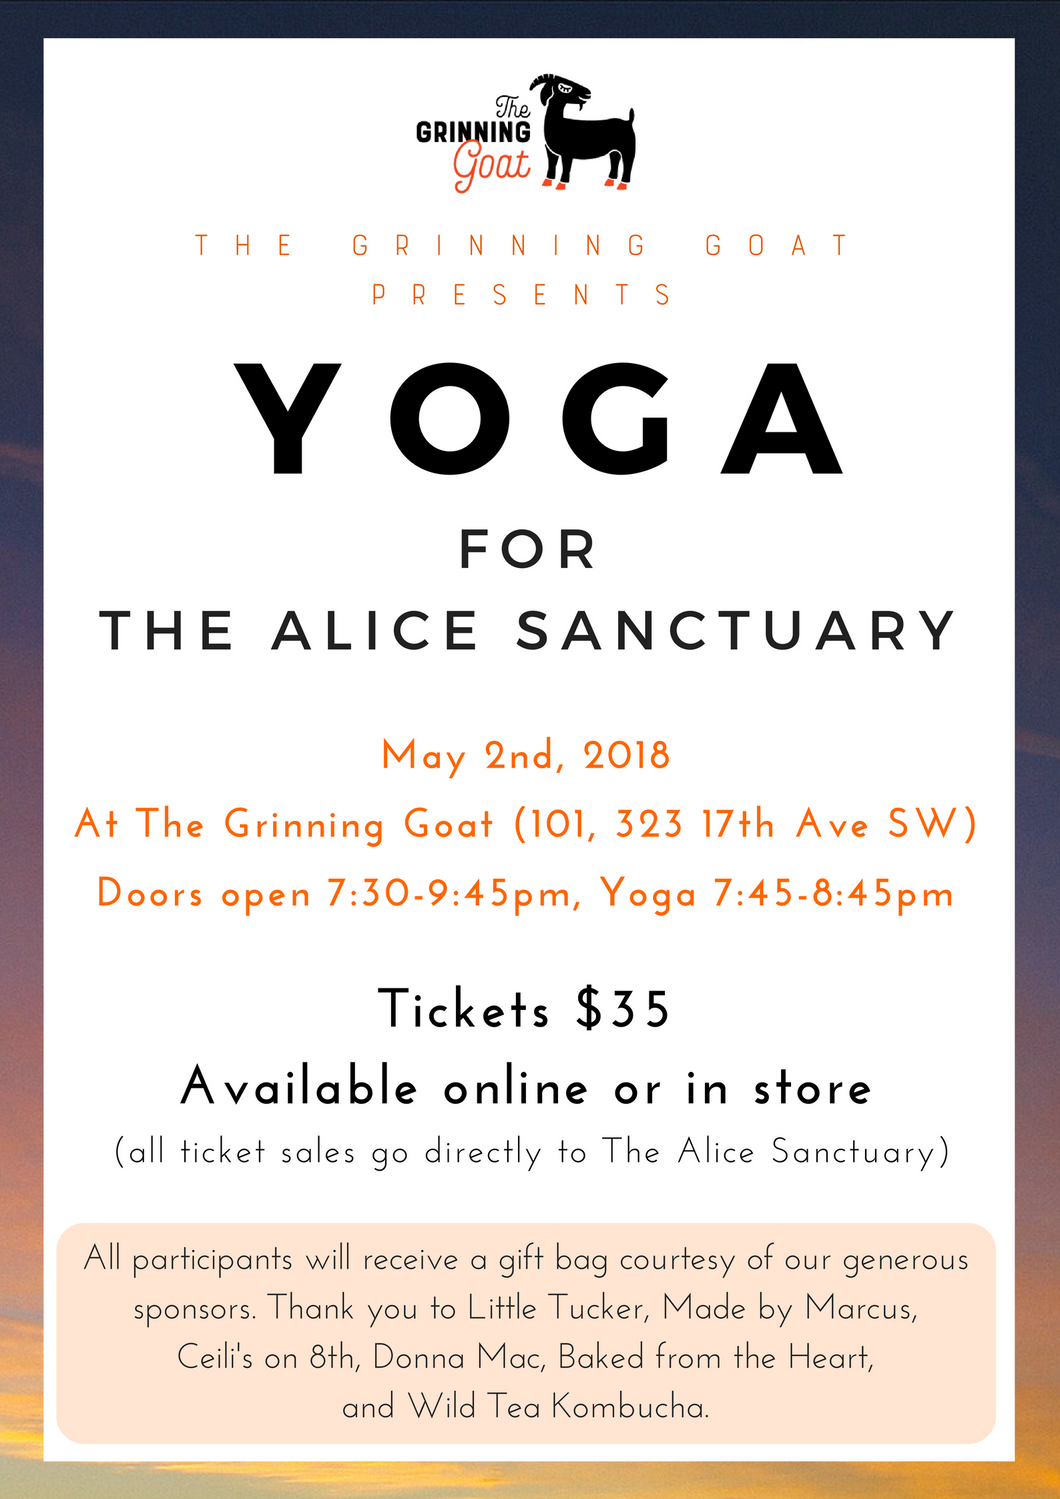 Yoga for The Alice Sanctuary